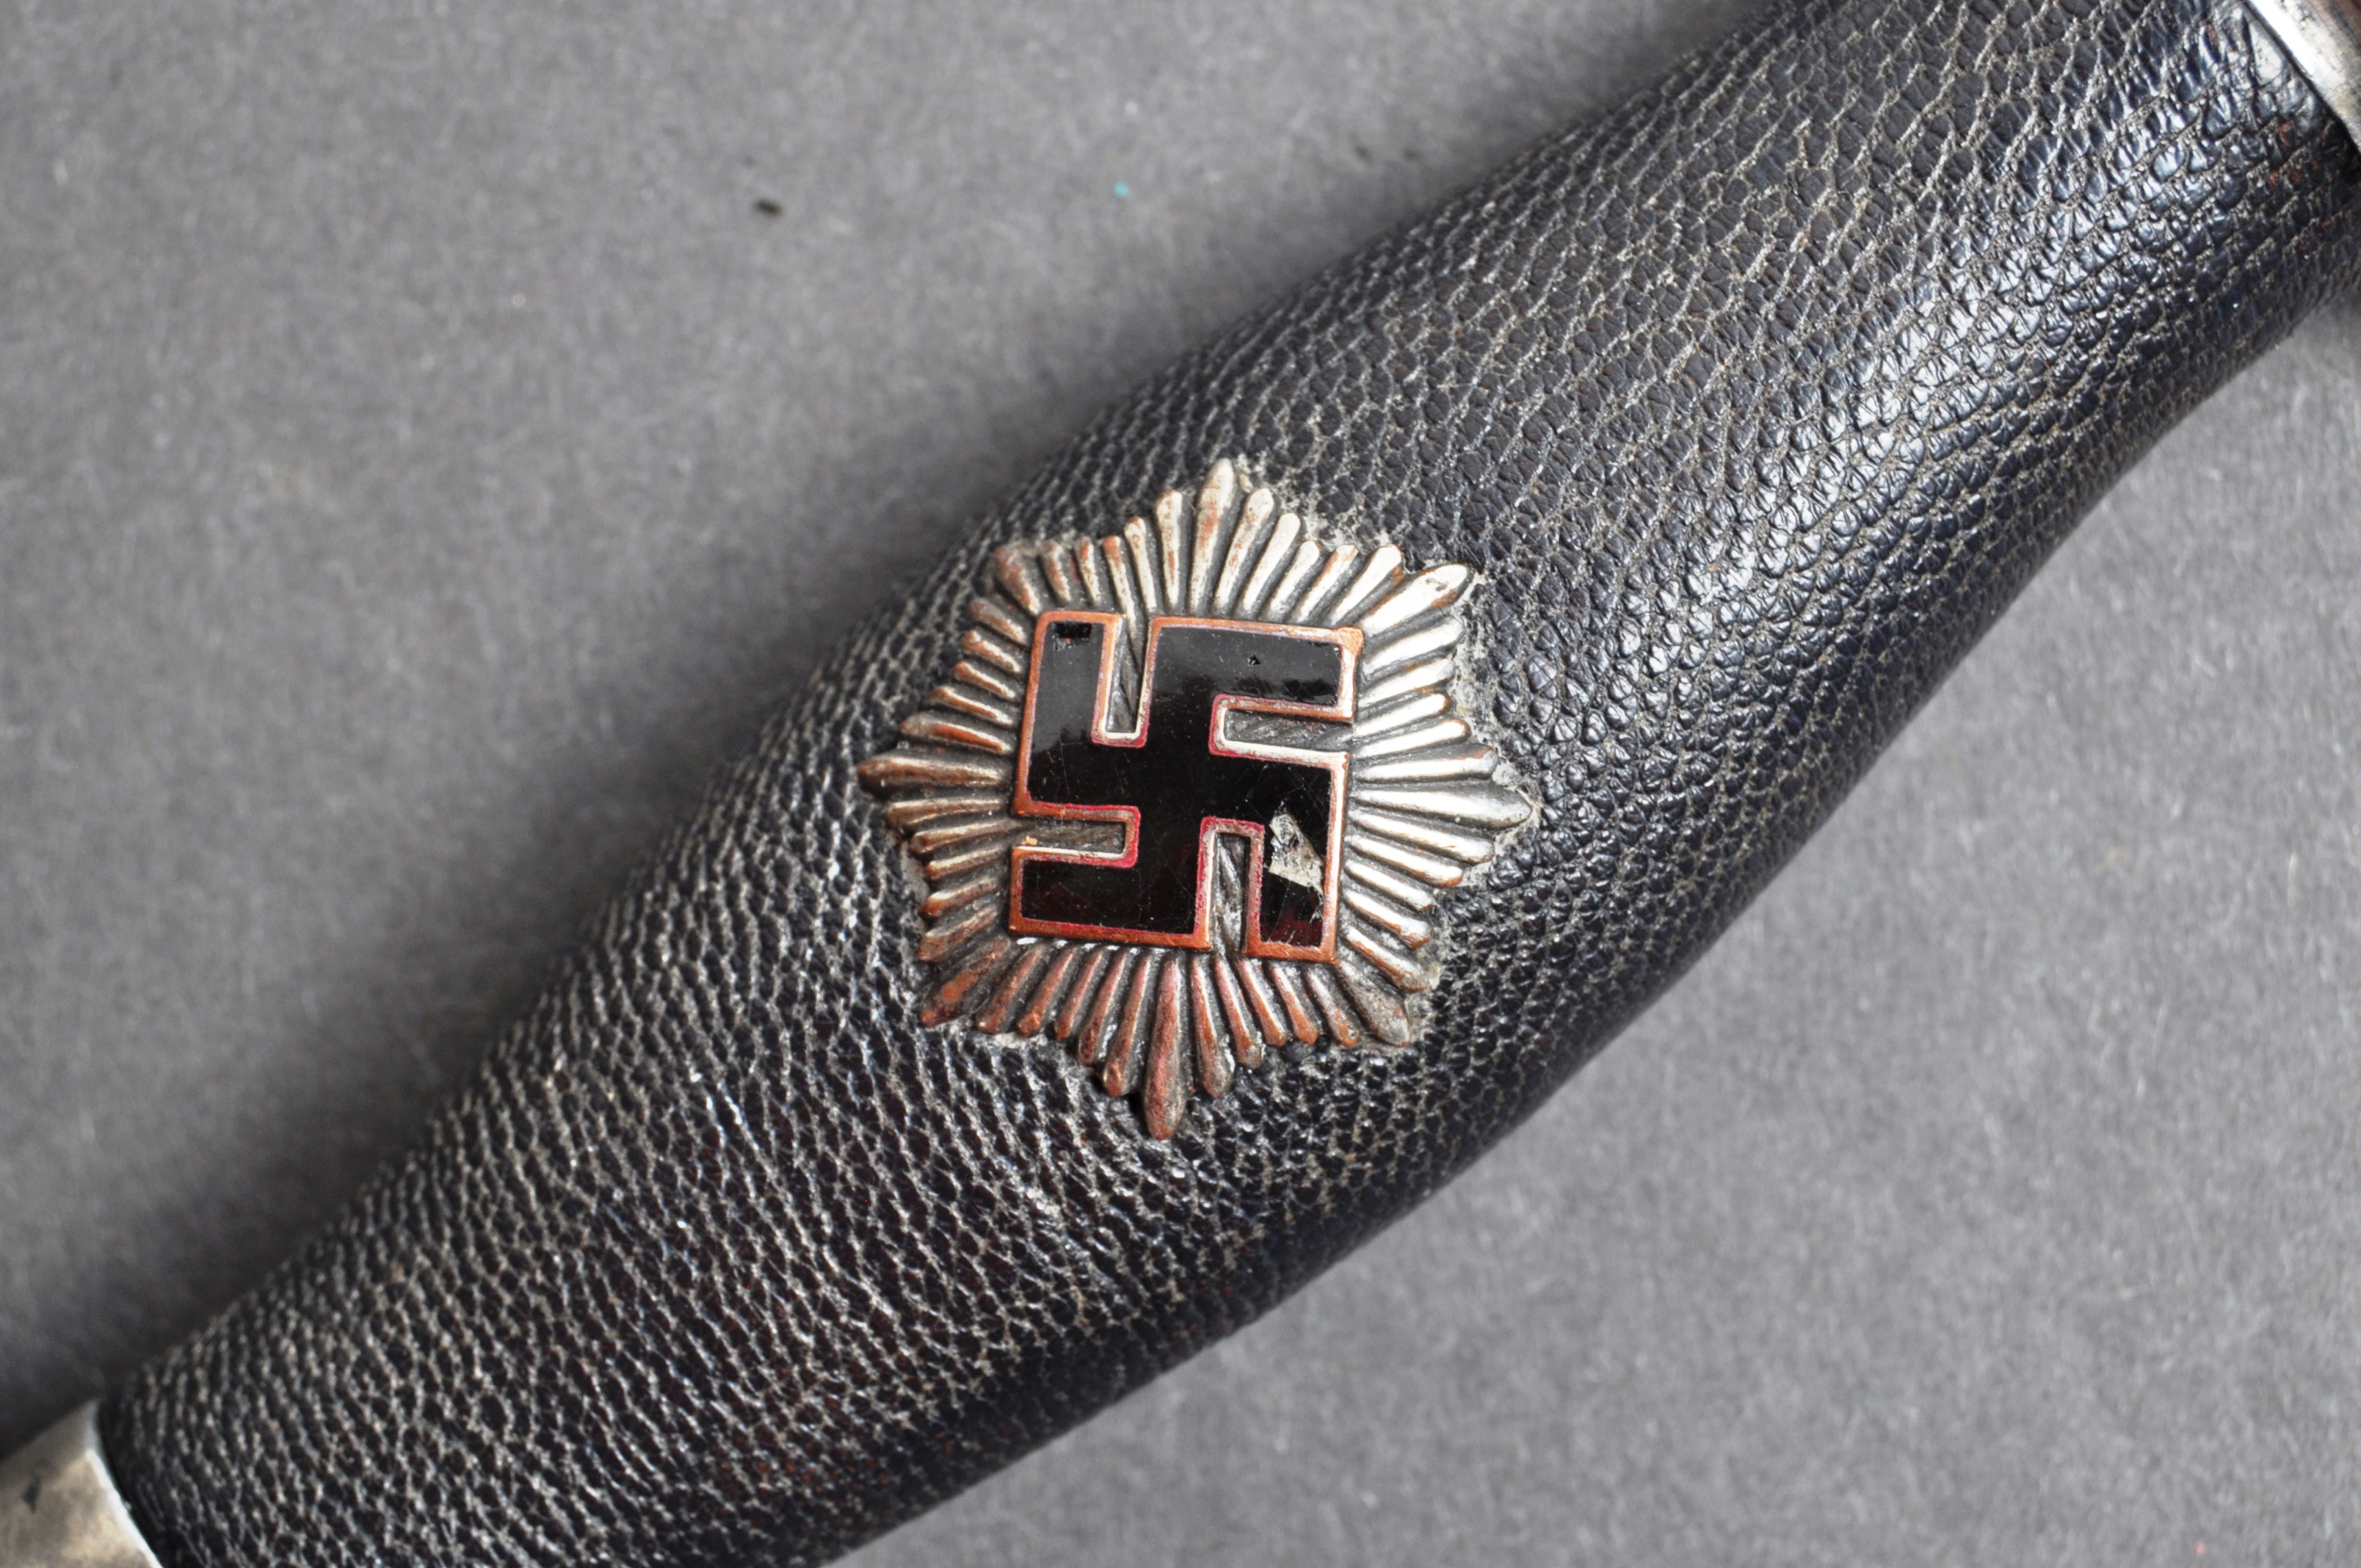 WWII SECOND WORLD WAR GERMAN AIR PROTECTION SERVICE DAGGER - Image 5 of 11